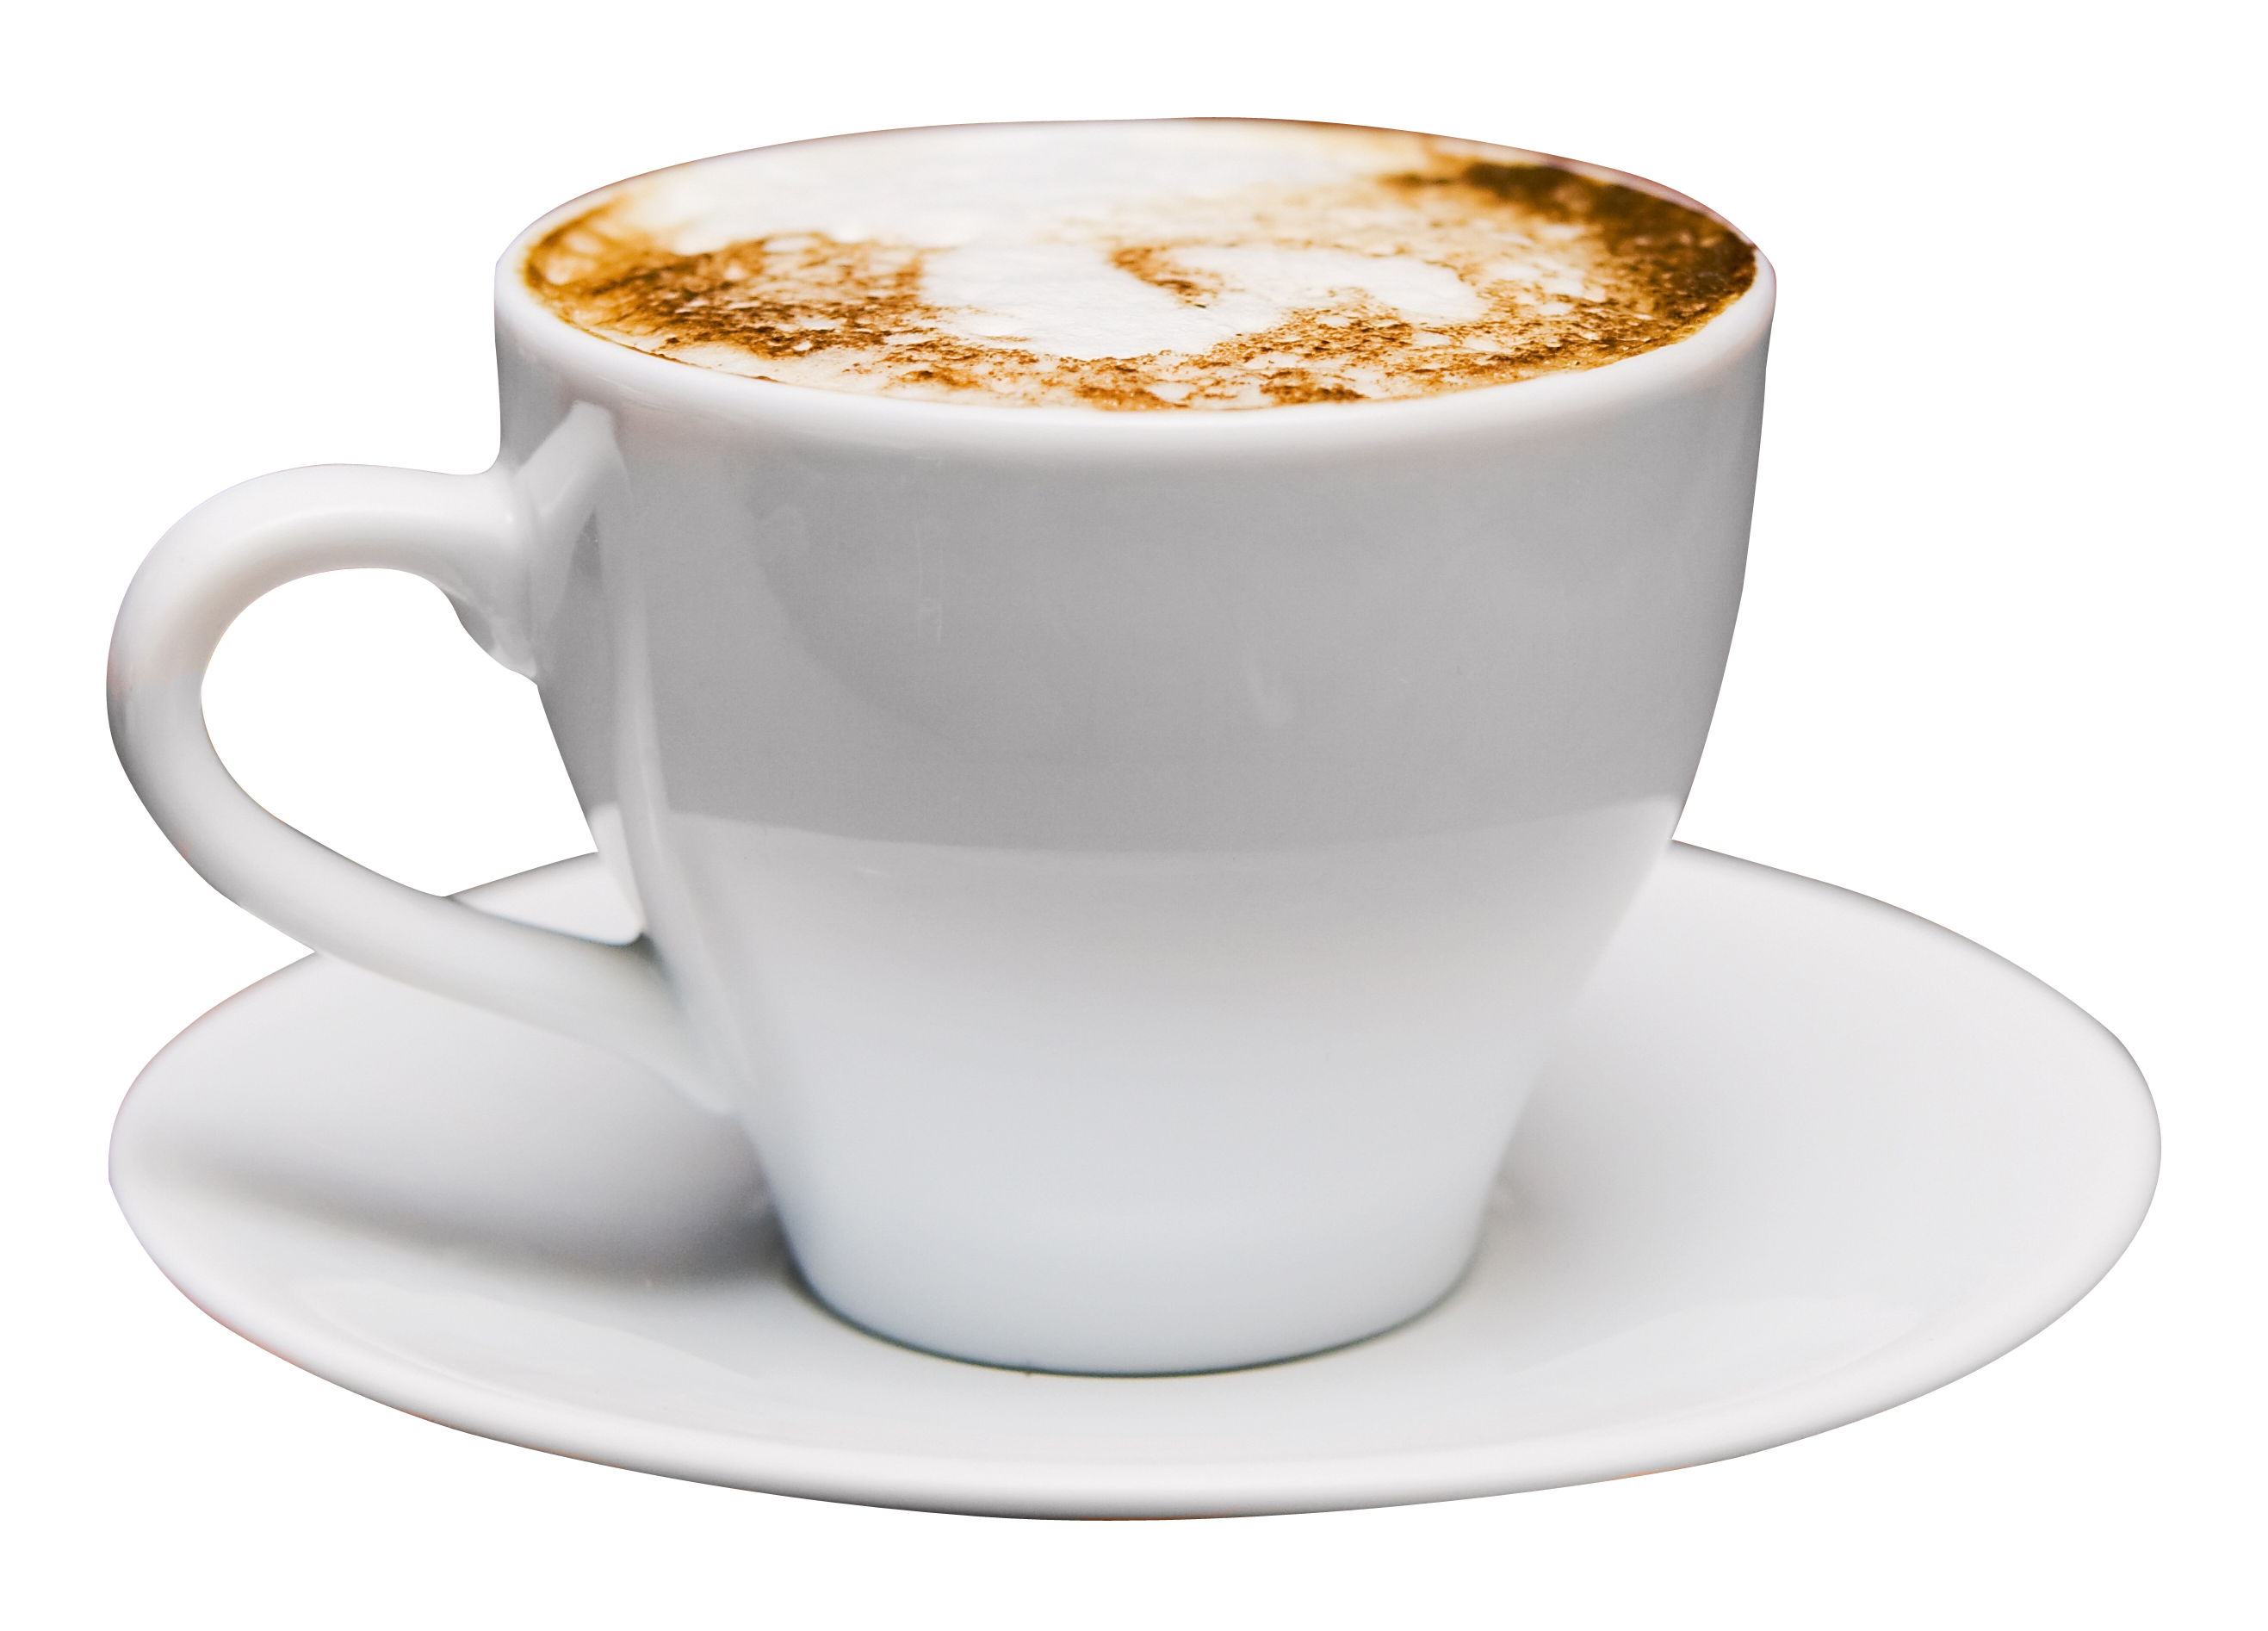 Png Of Cup Of Coffee - Coffee Cup PNG Image - PurePNG | Free transparent CC0 PNG Image ...